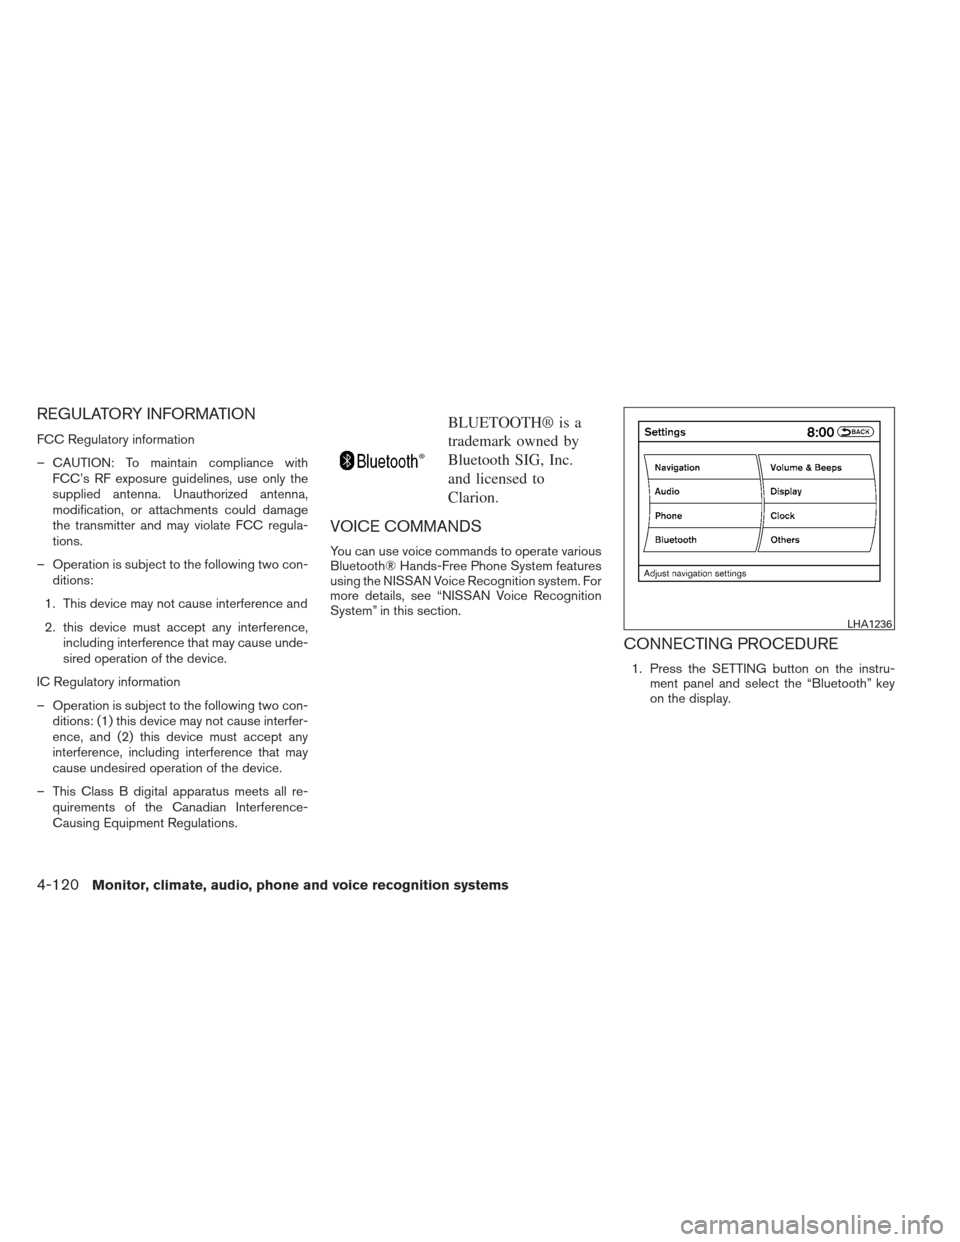 NISSAN MAXIMA 2013 A35 / 7.G Owners Manual REGULATORY INFORMATION FCC Regulatory information – CAUTION: To maintain compliance withFCC's RF exposure guidelines, use only the supplied antenna. Unauthorized antenna, modification, or attachme